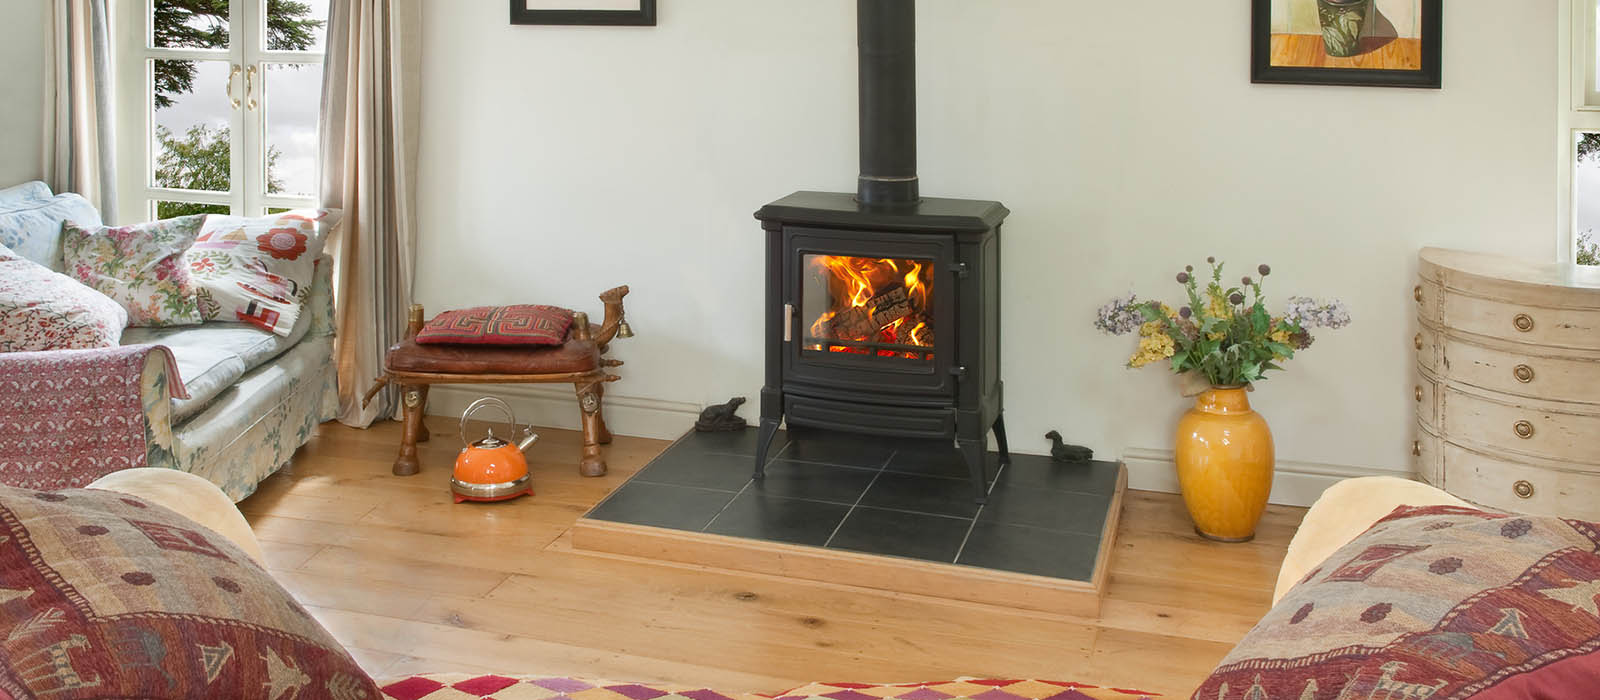 goval stoves supplier u0026 installer of wood burning stoves in aberdeen